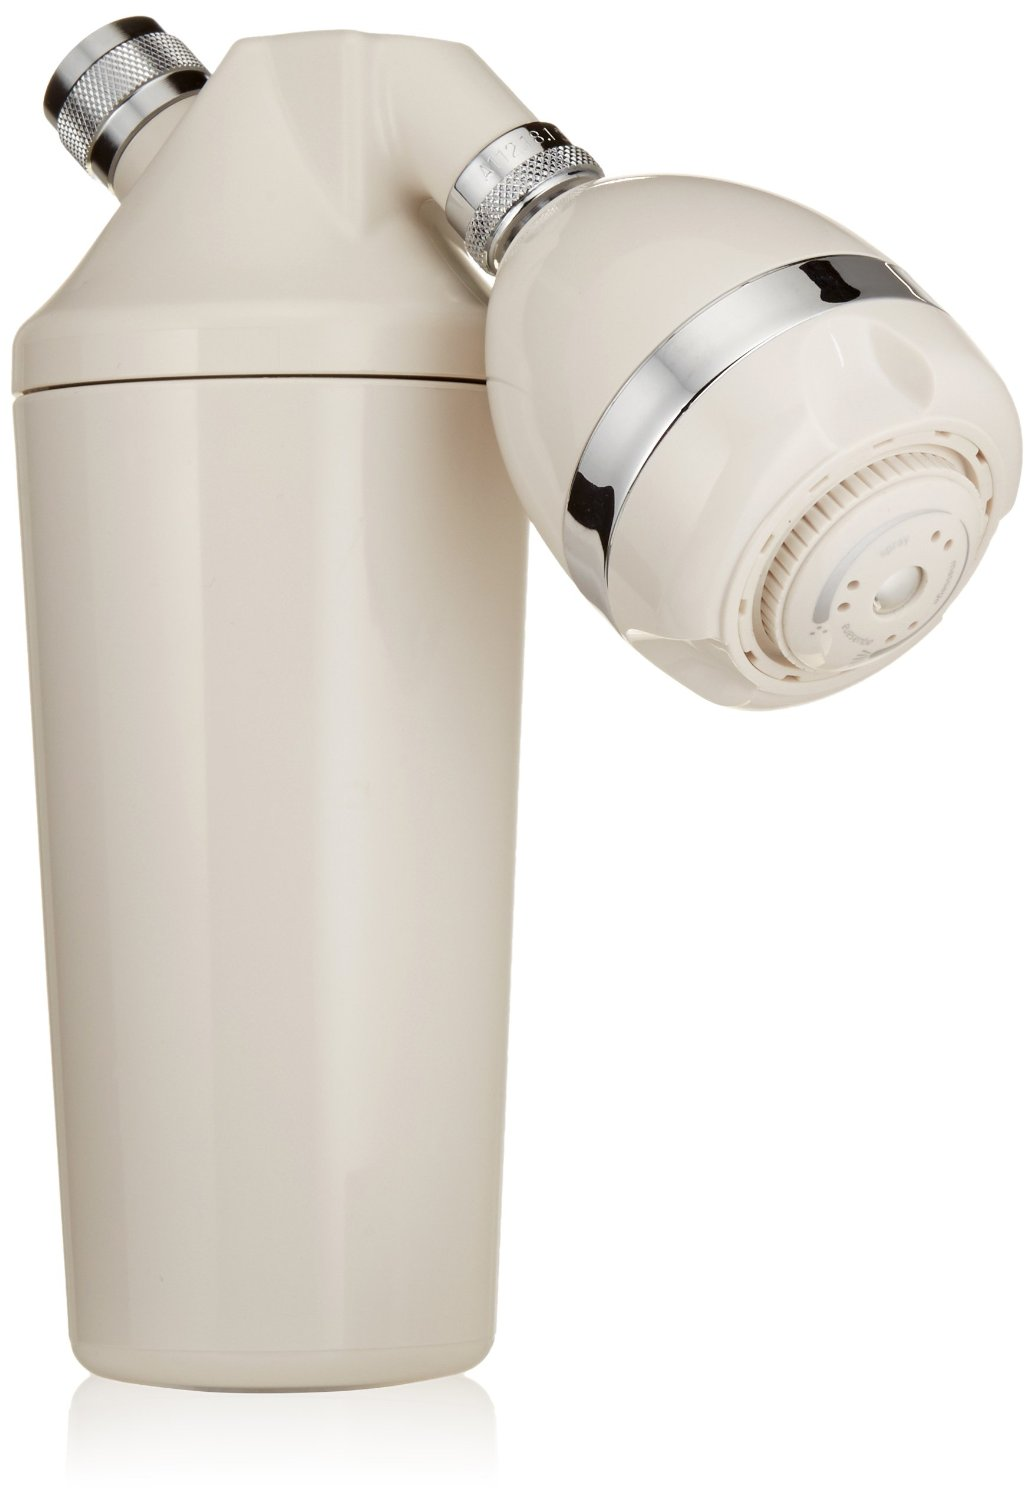 The Jonathan Product Beauty Water Shower Purification System